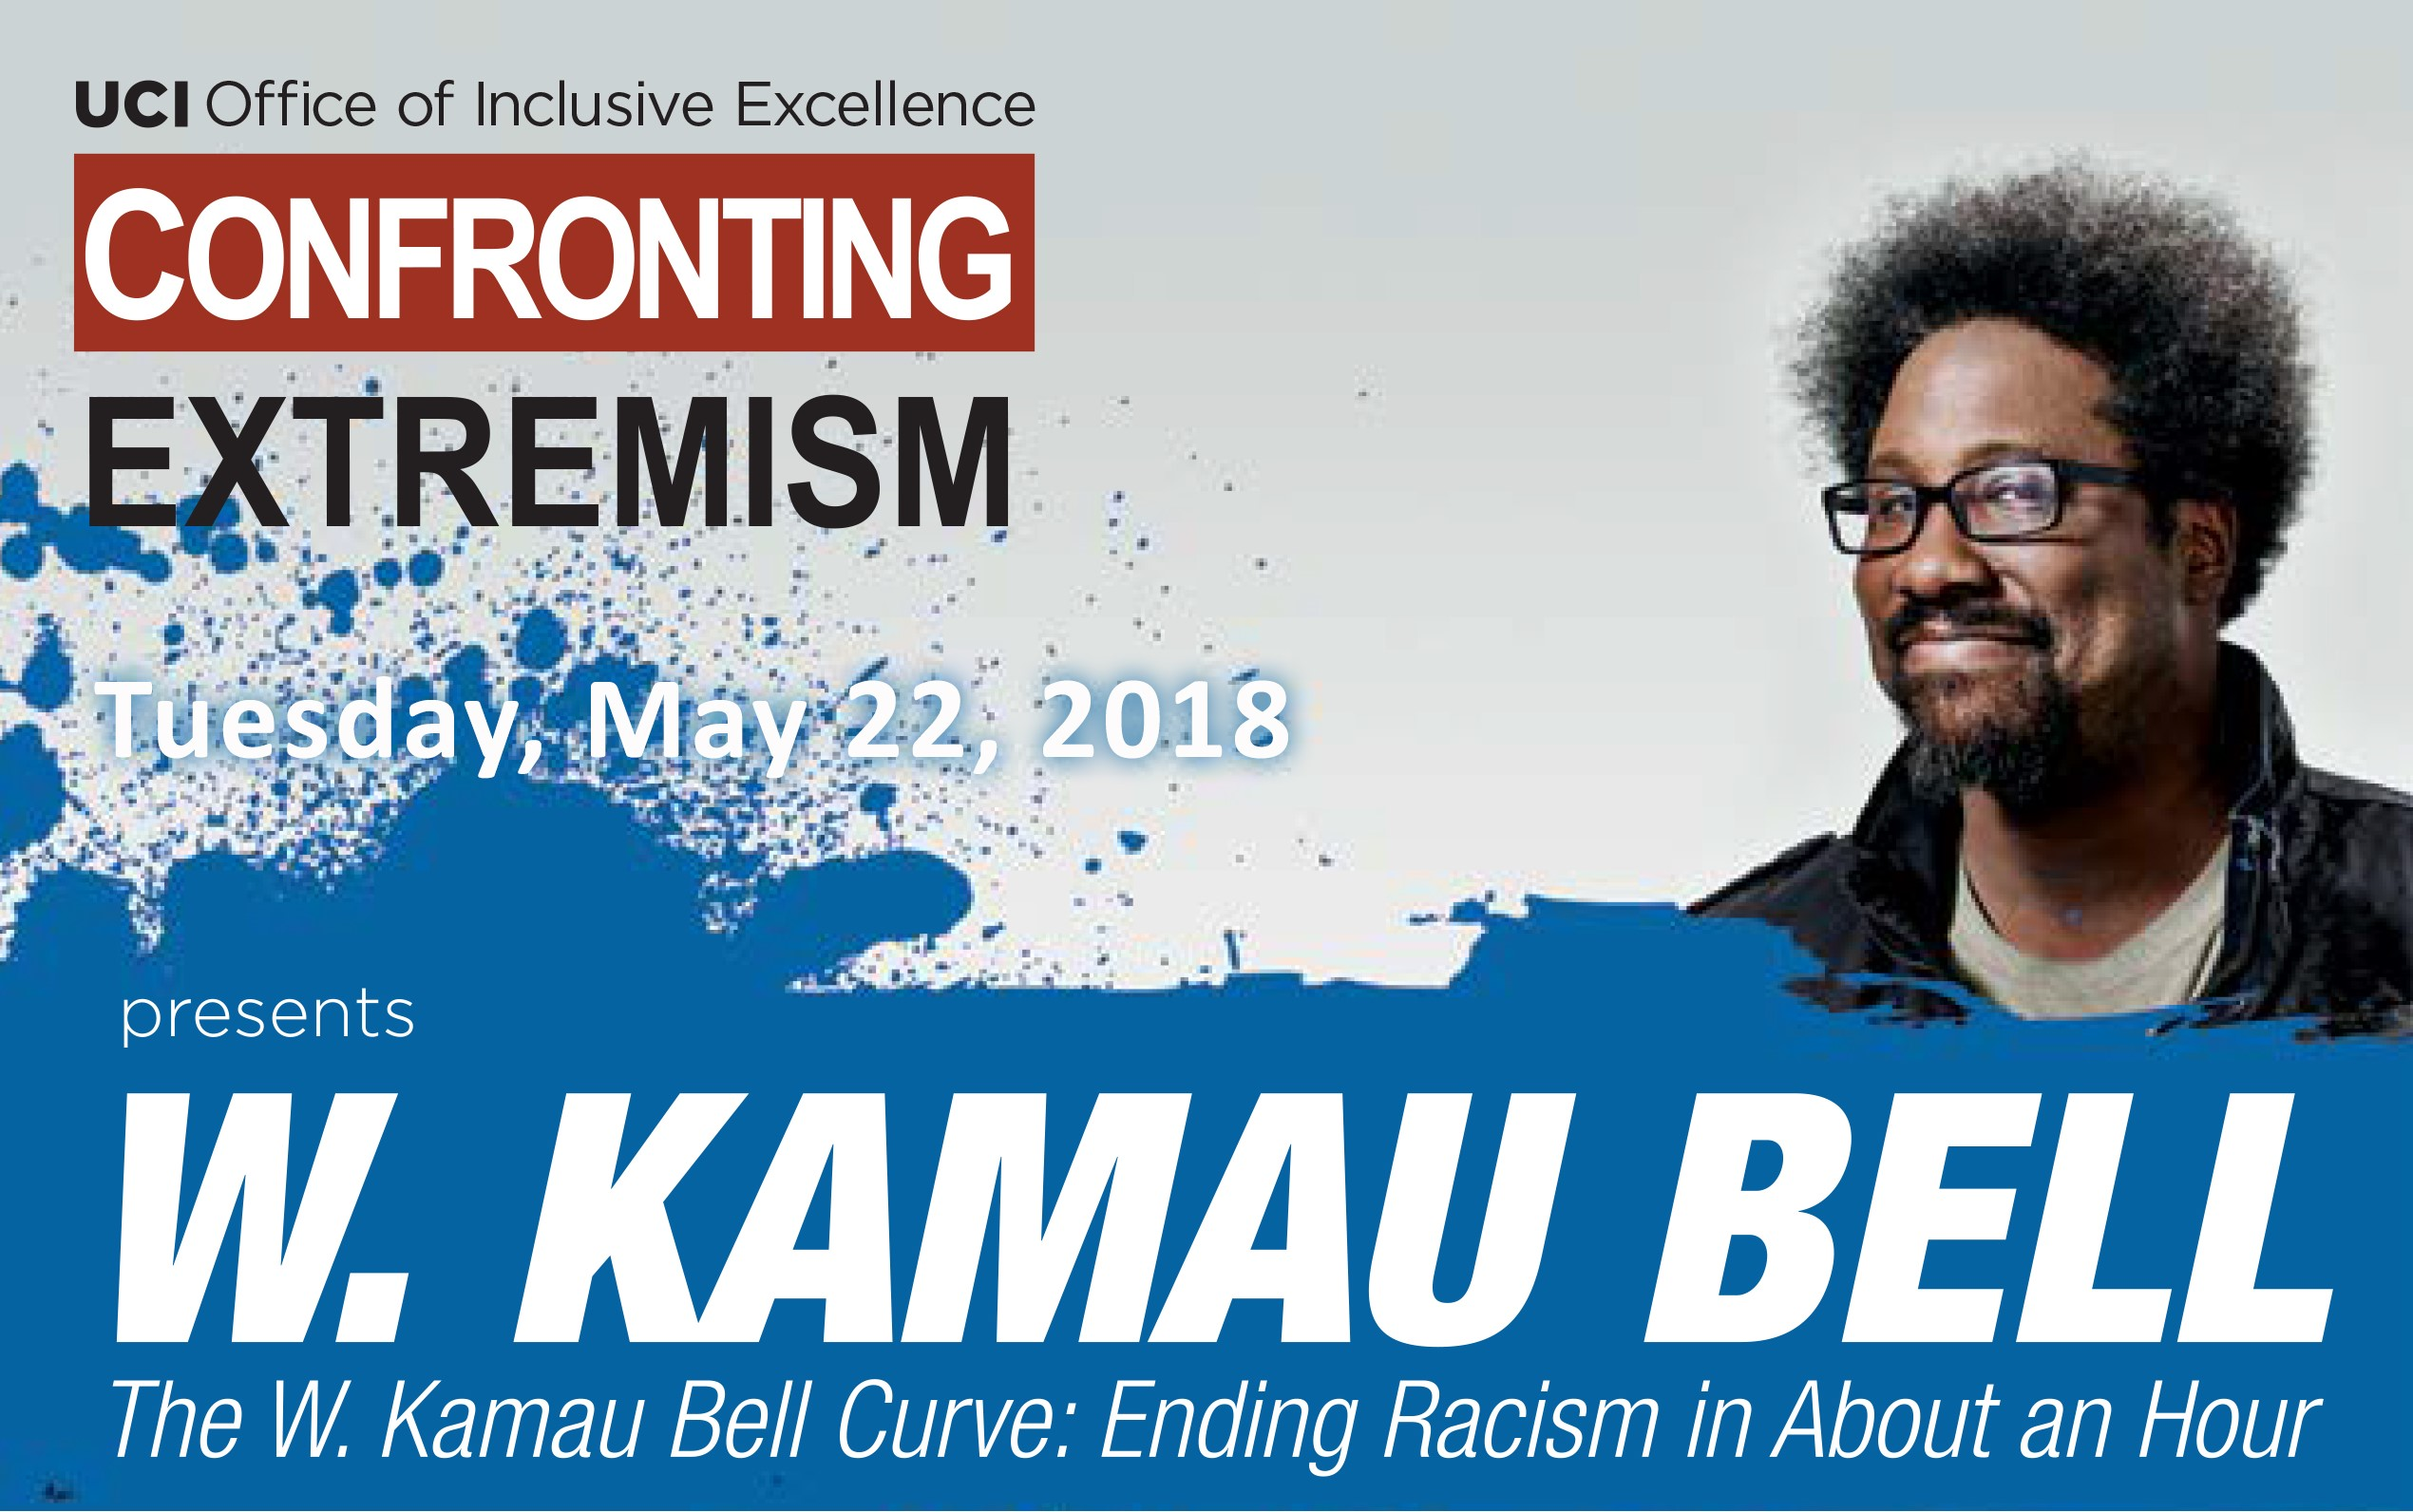 Picture of advertisement for W. Kamau Bell's Ending Racism in About an Hour